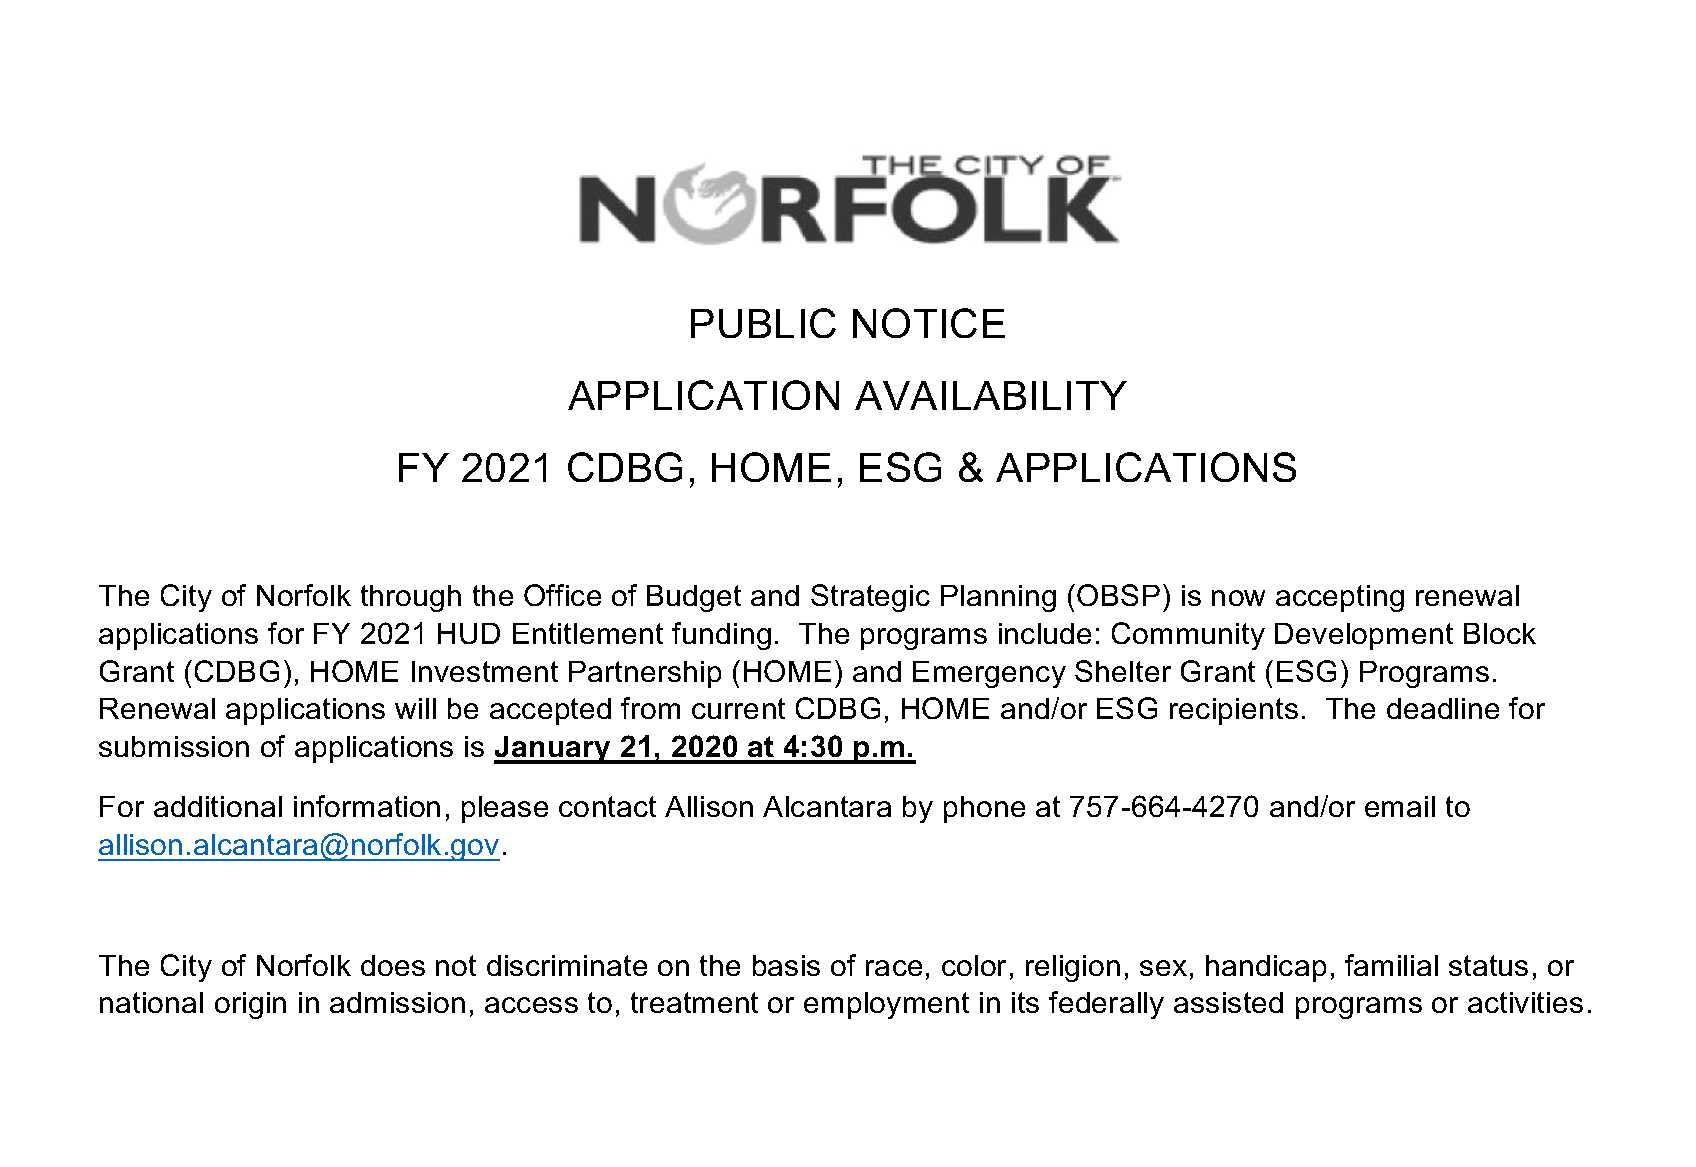 Public Notice - FY 2021 Application Availability